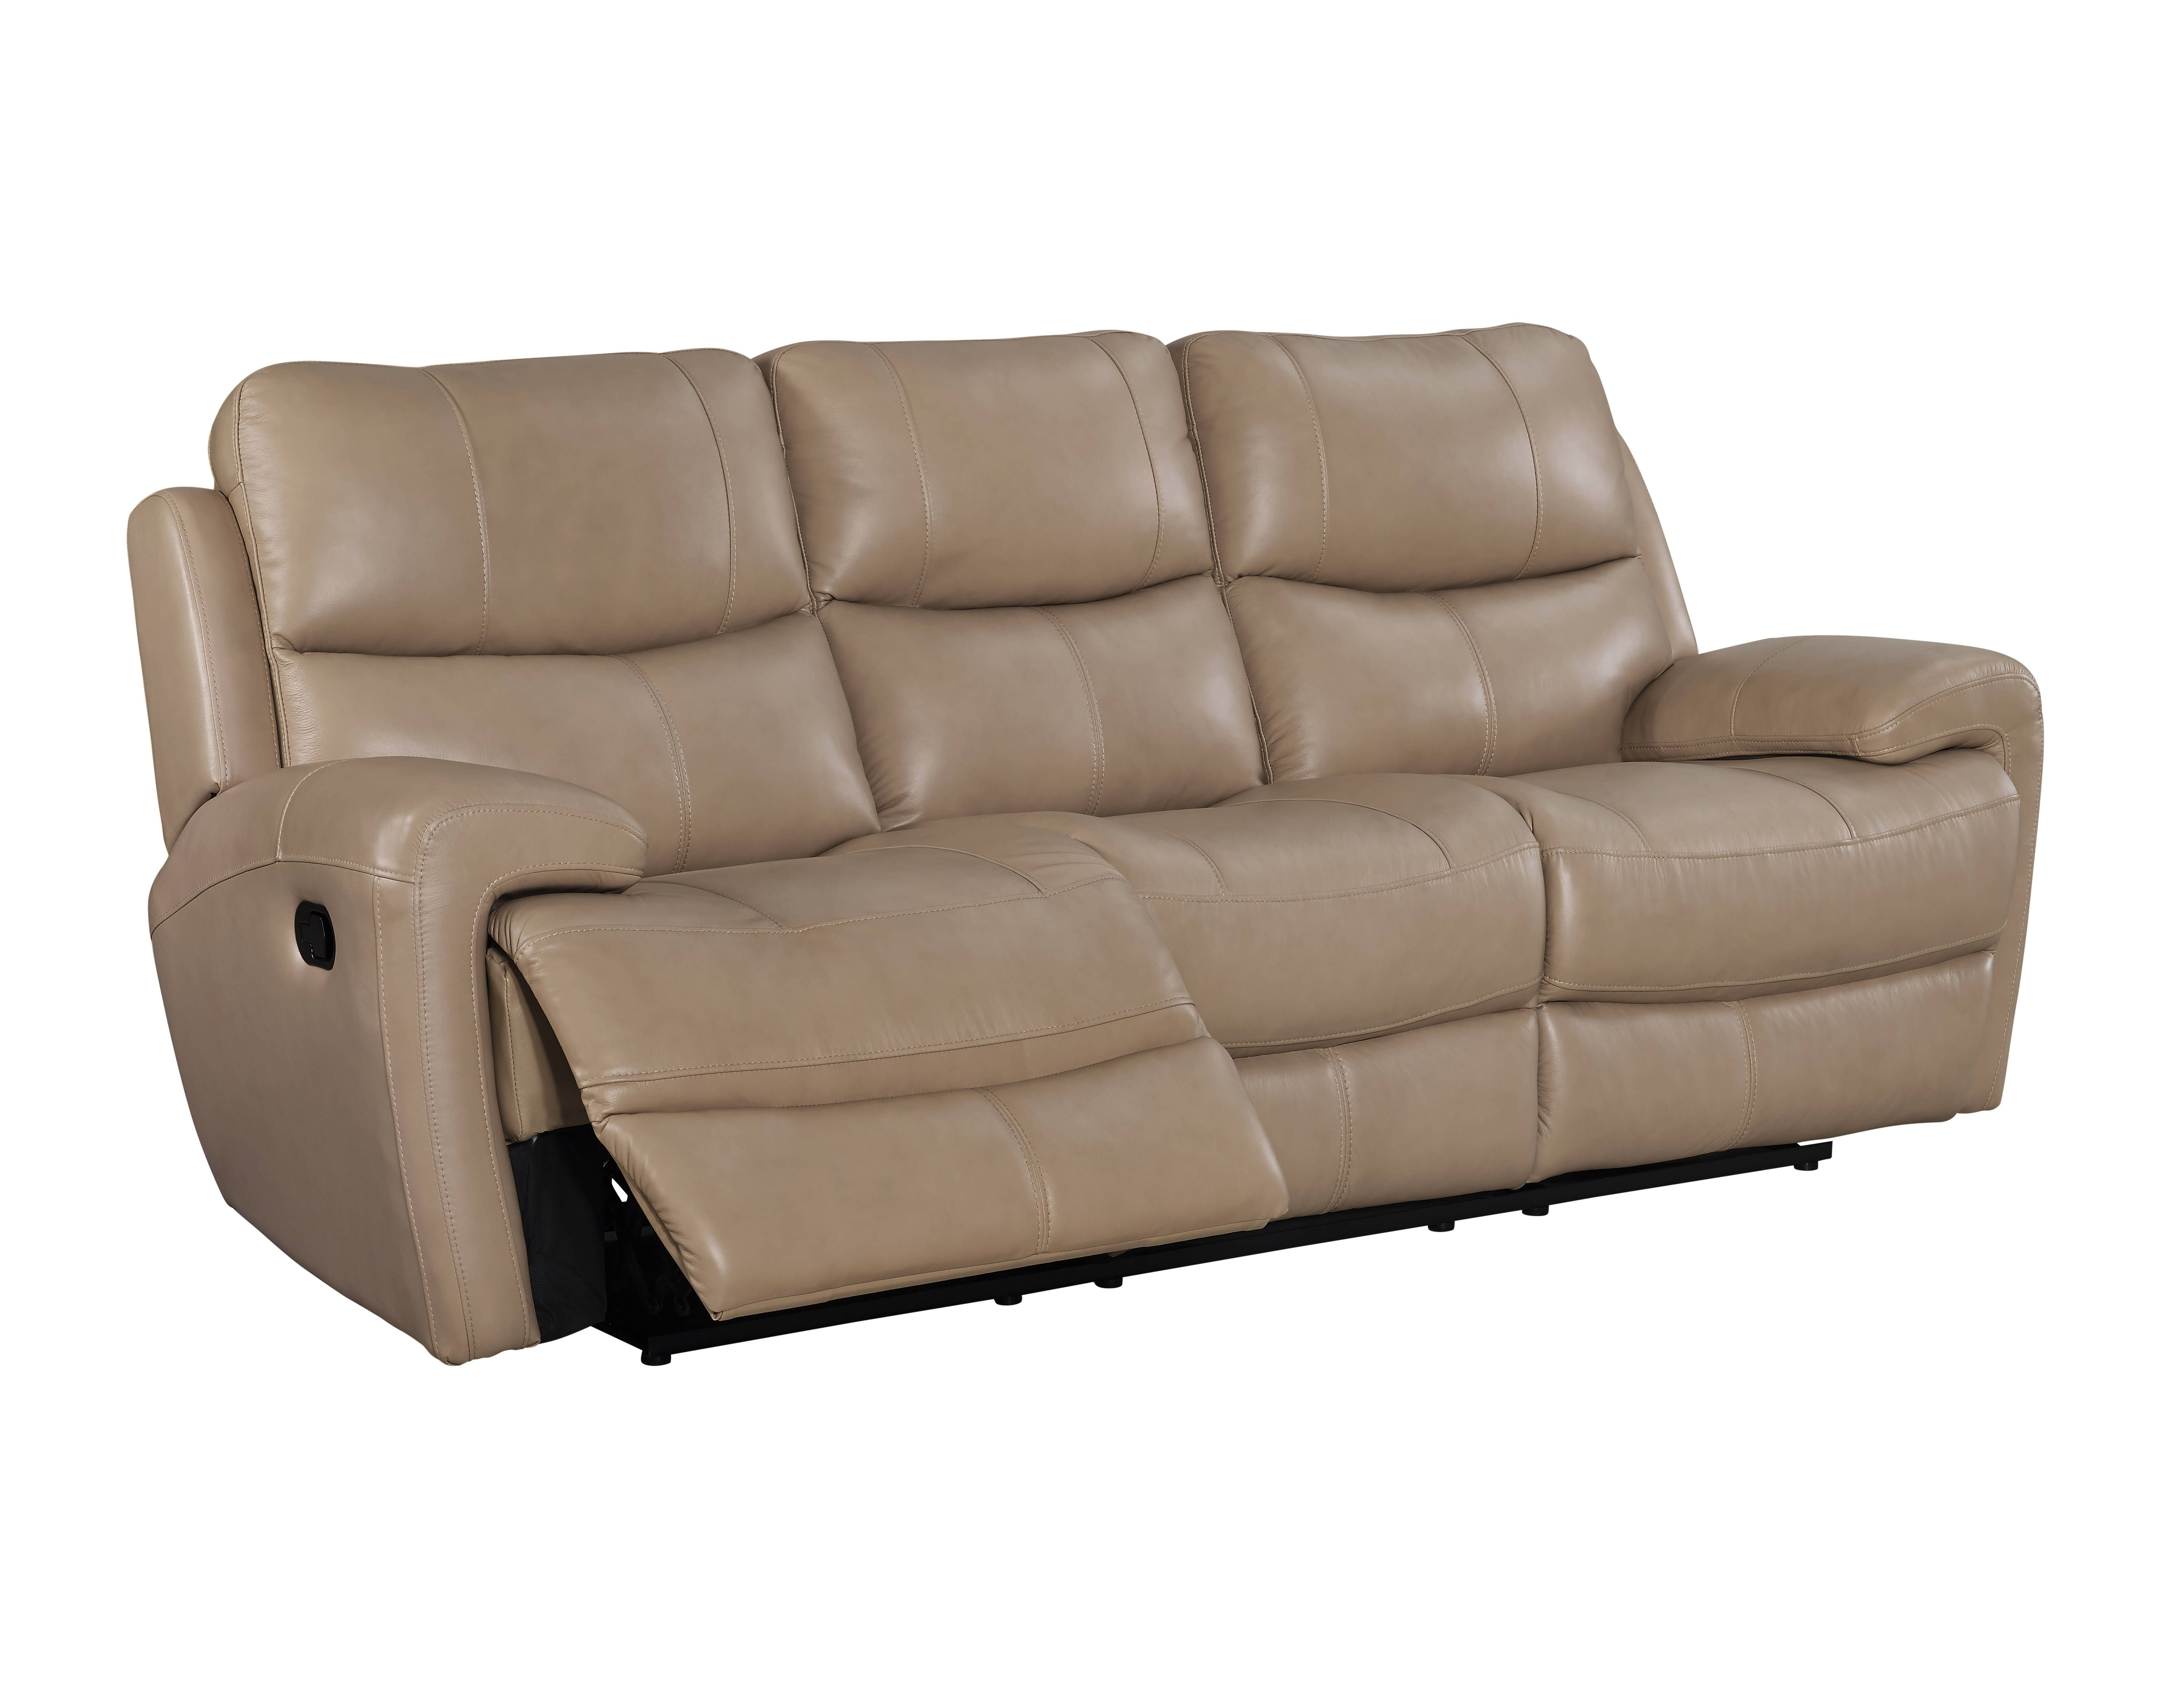 Boulevard Taupe Top Grain Leather Match Power Dual Recliner Sofa